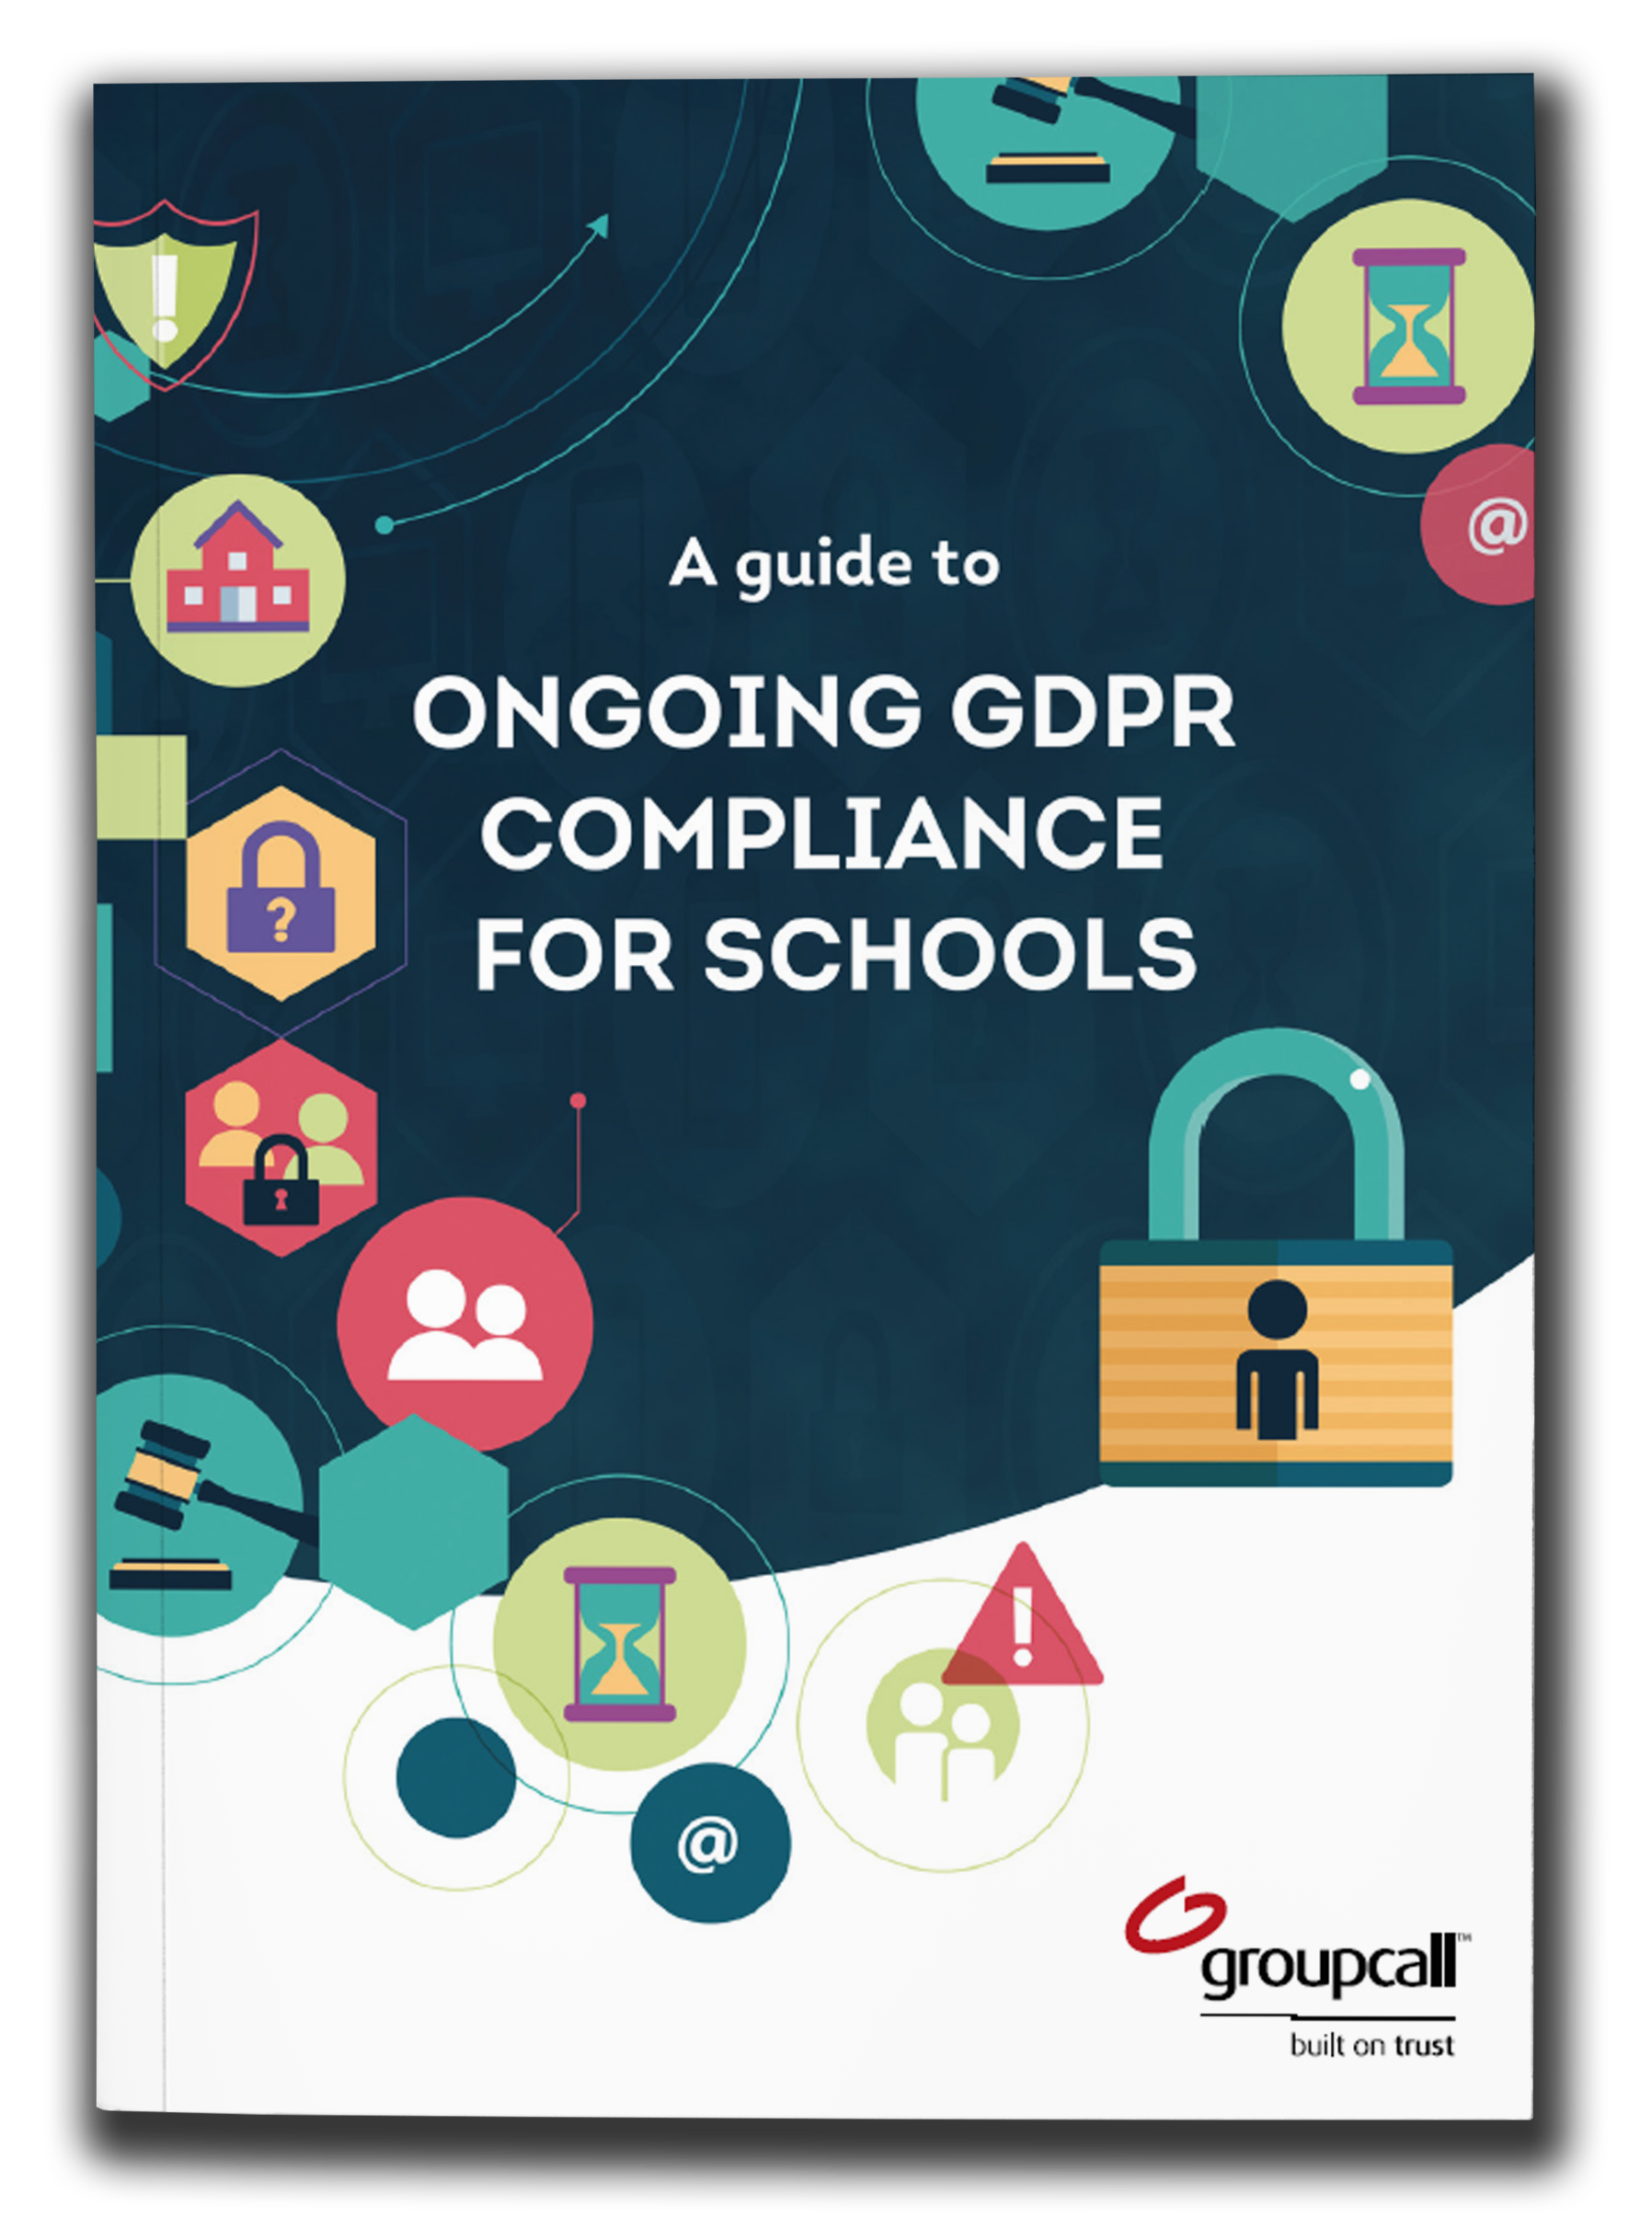 Ongoing GDPR compliance for schools